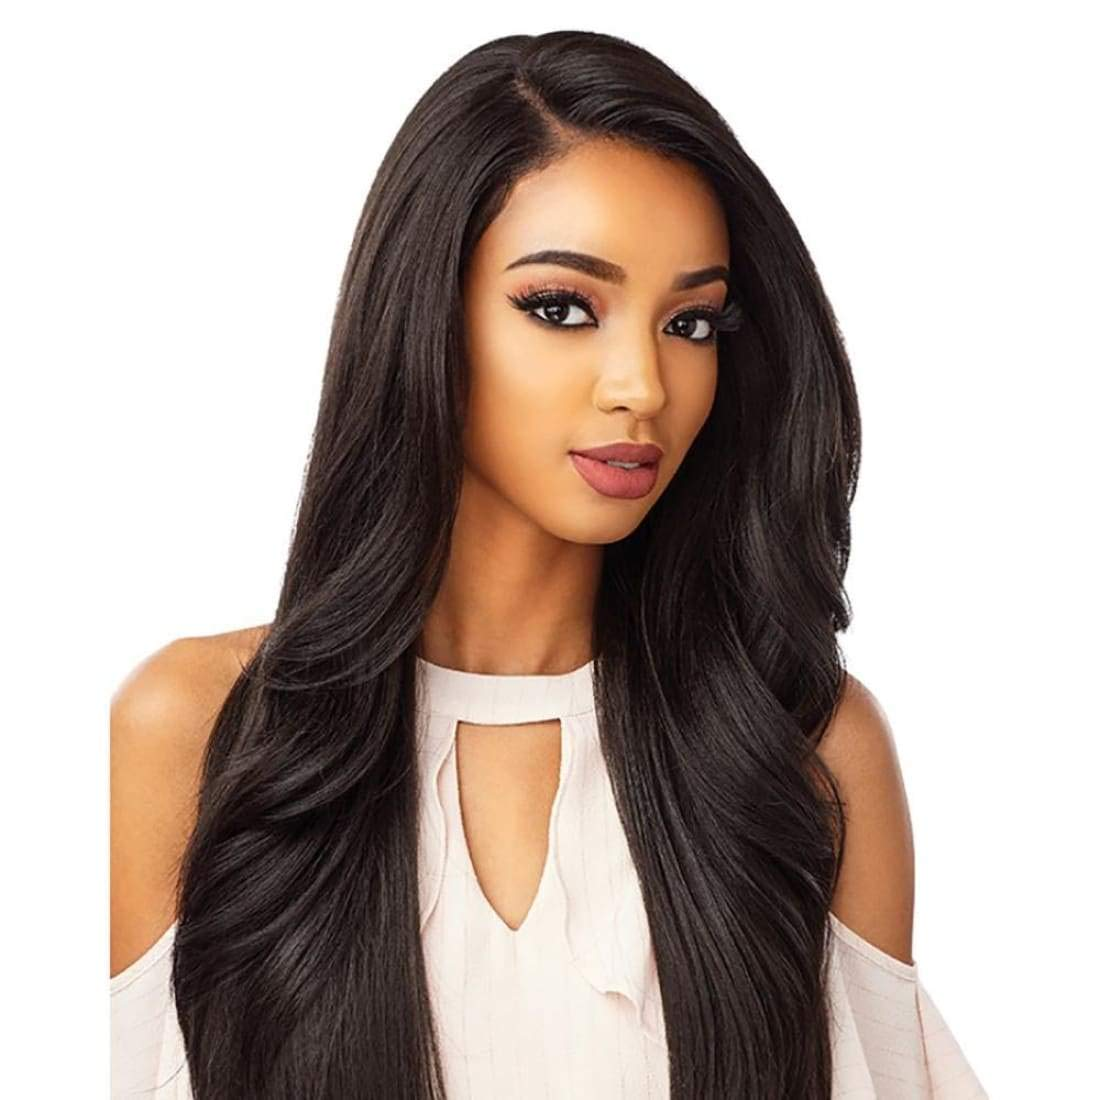 Sensationnel 100% Premium Fiber Cloud9 WHAT LACE? 13''X6'' Swiss Lace Wig - MORGAN (1B [Off Black]) by Sensationnel